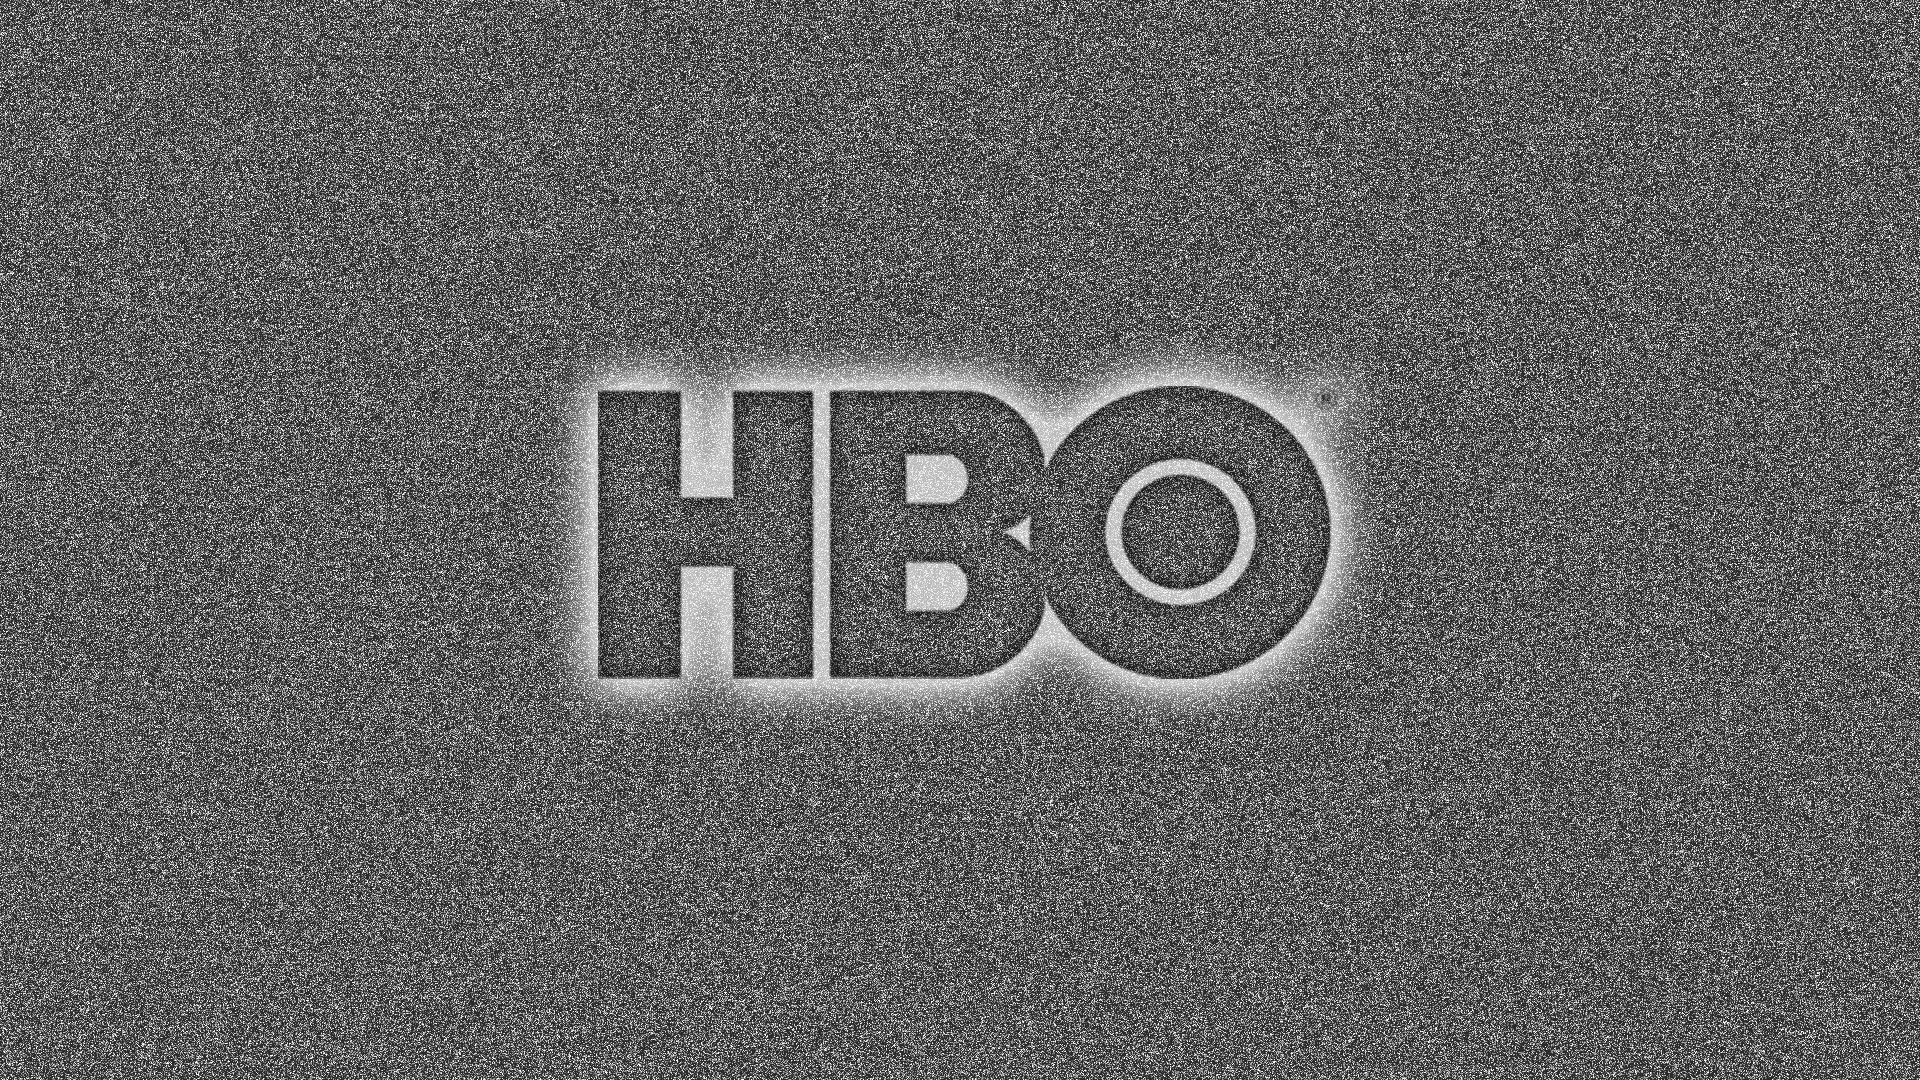 HBO channel subscription